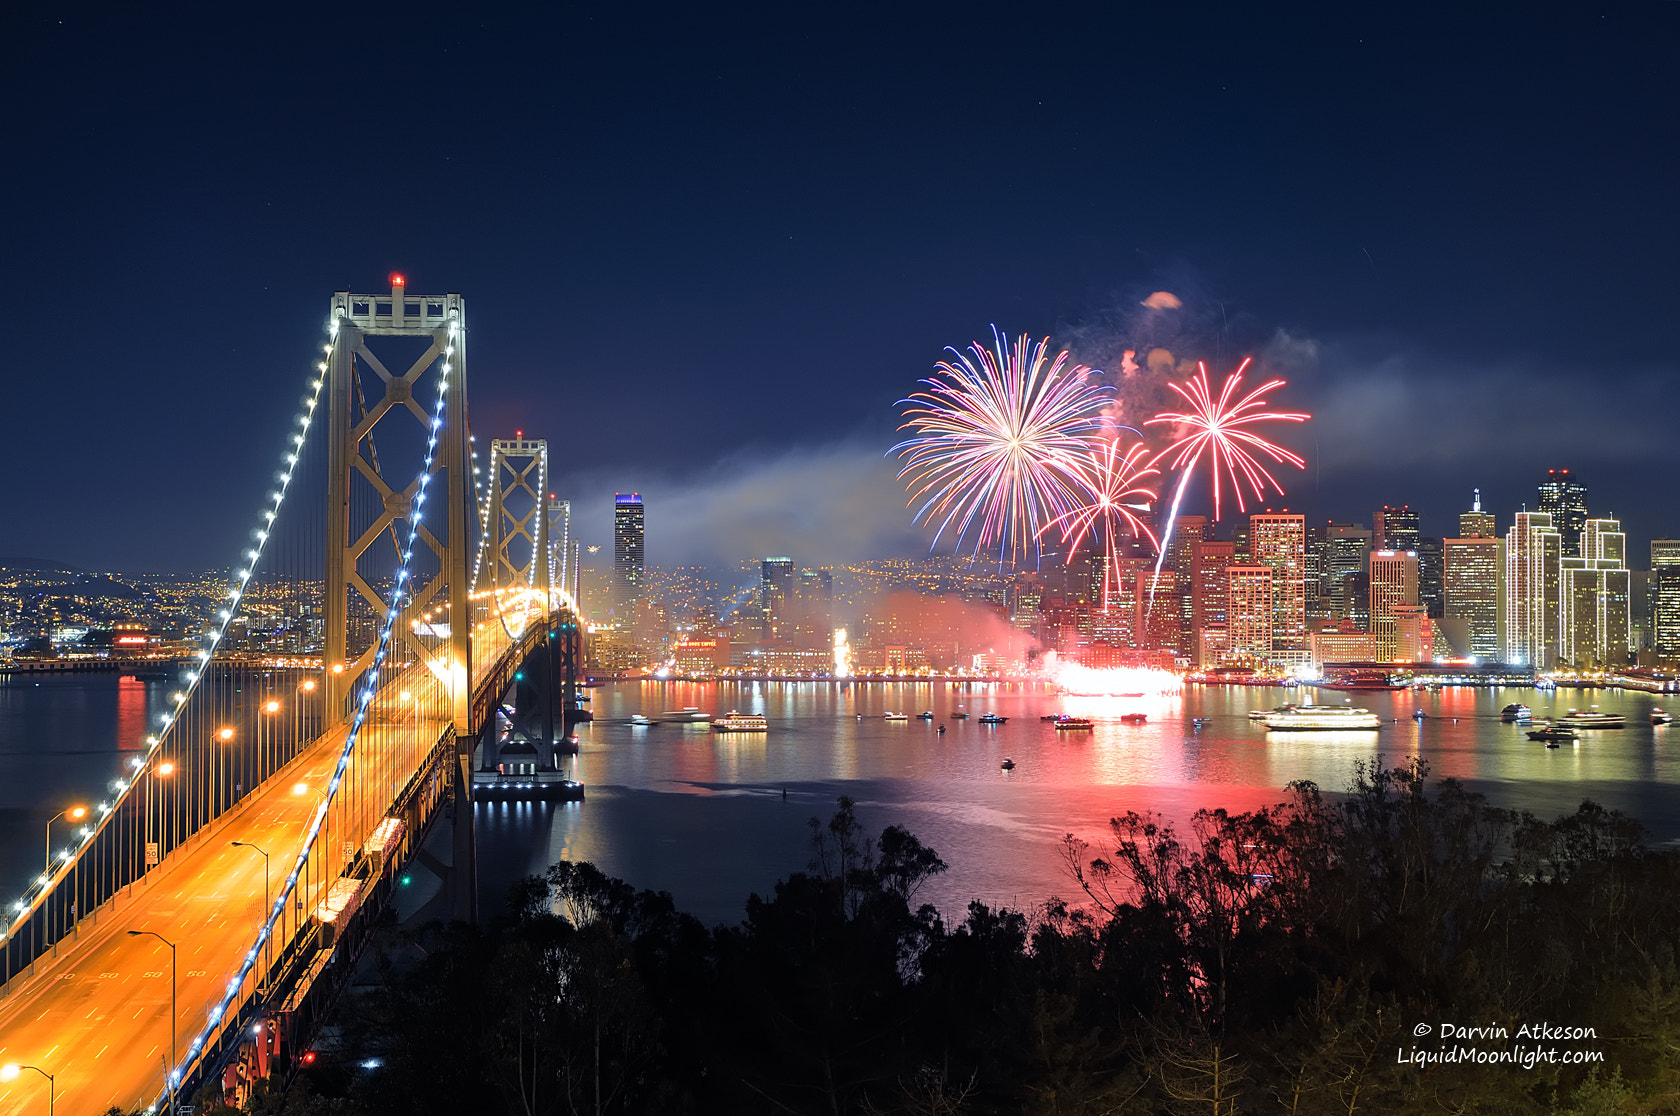 Photograph San Francisco New Years Fireworks - Happy New Year 2012 by Darvin Atkeson on 500px